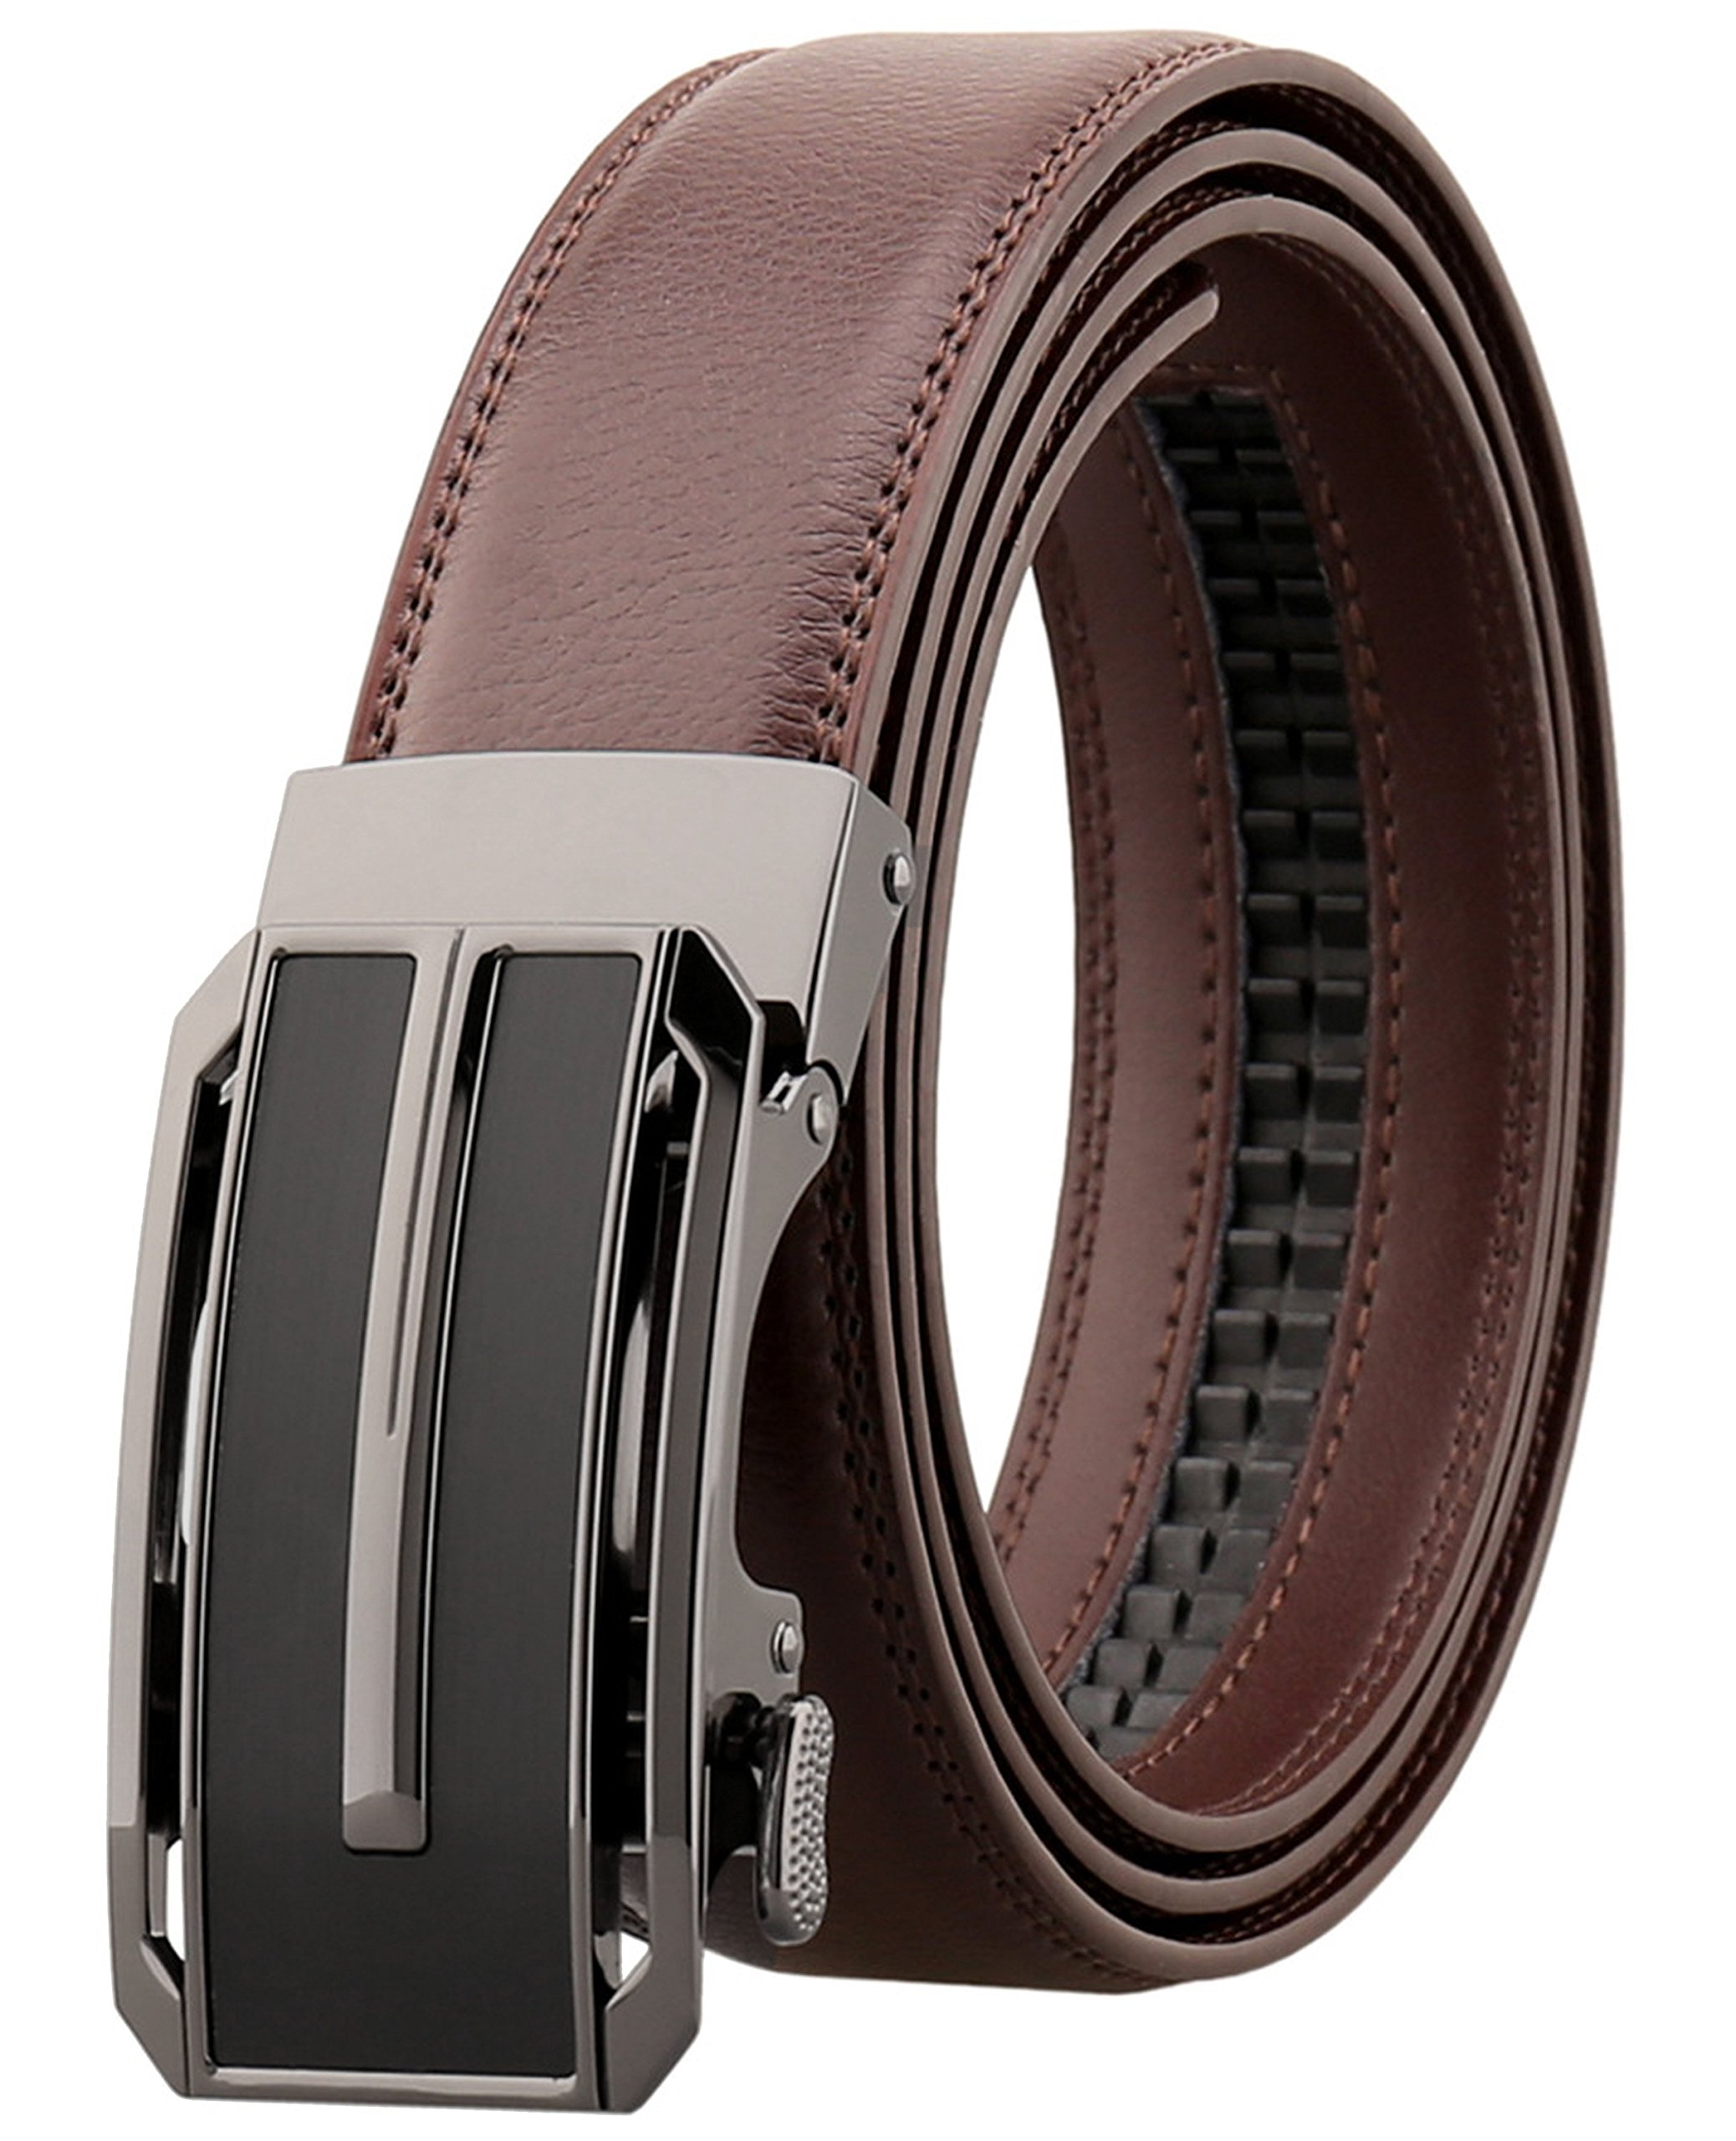 Ayli Men's Dress Belt, Genuine Leather Ratchet Belt with Automatic Buckle, 87a Coffee, bt2a087cf